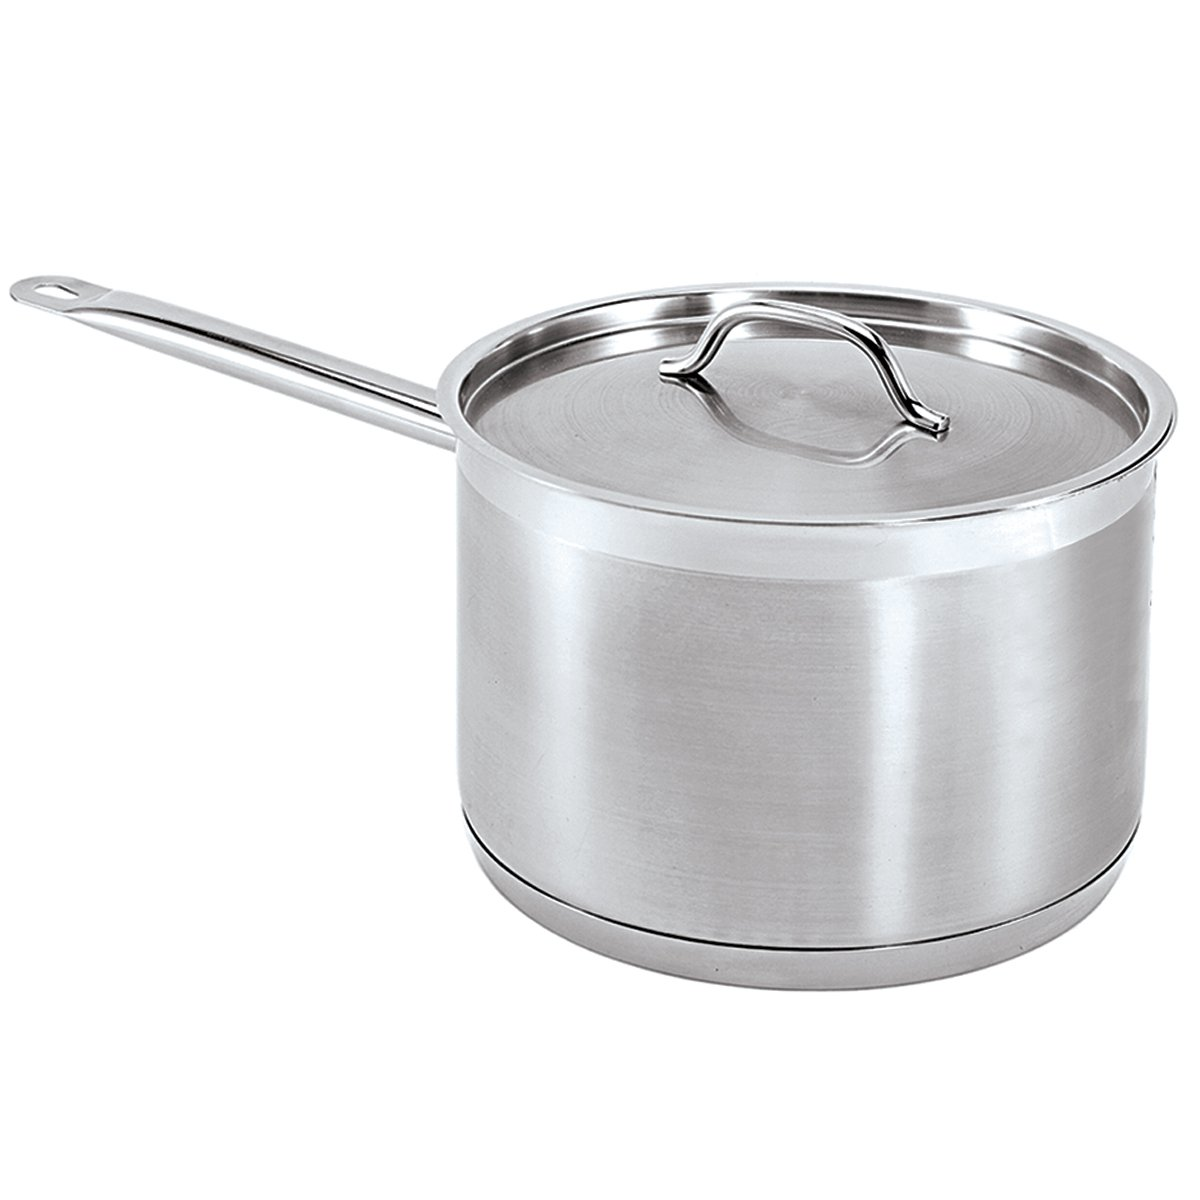 SSP-2 Update International 2 Qt Induction Ready Stainless Steel Sauce Pan w//Cover